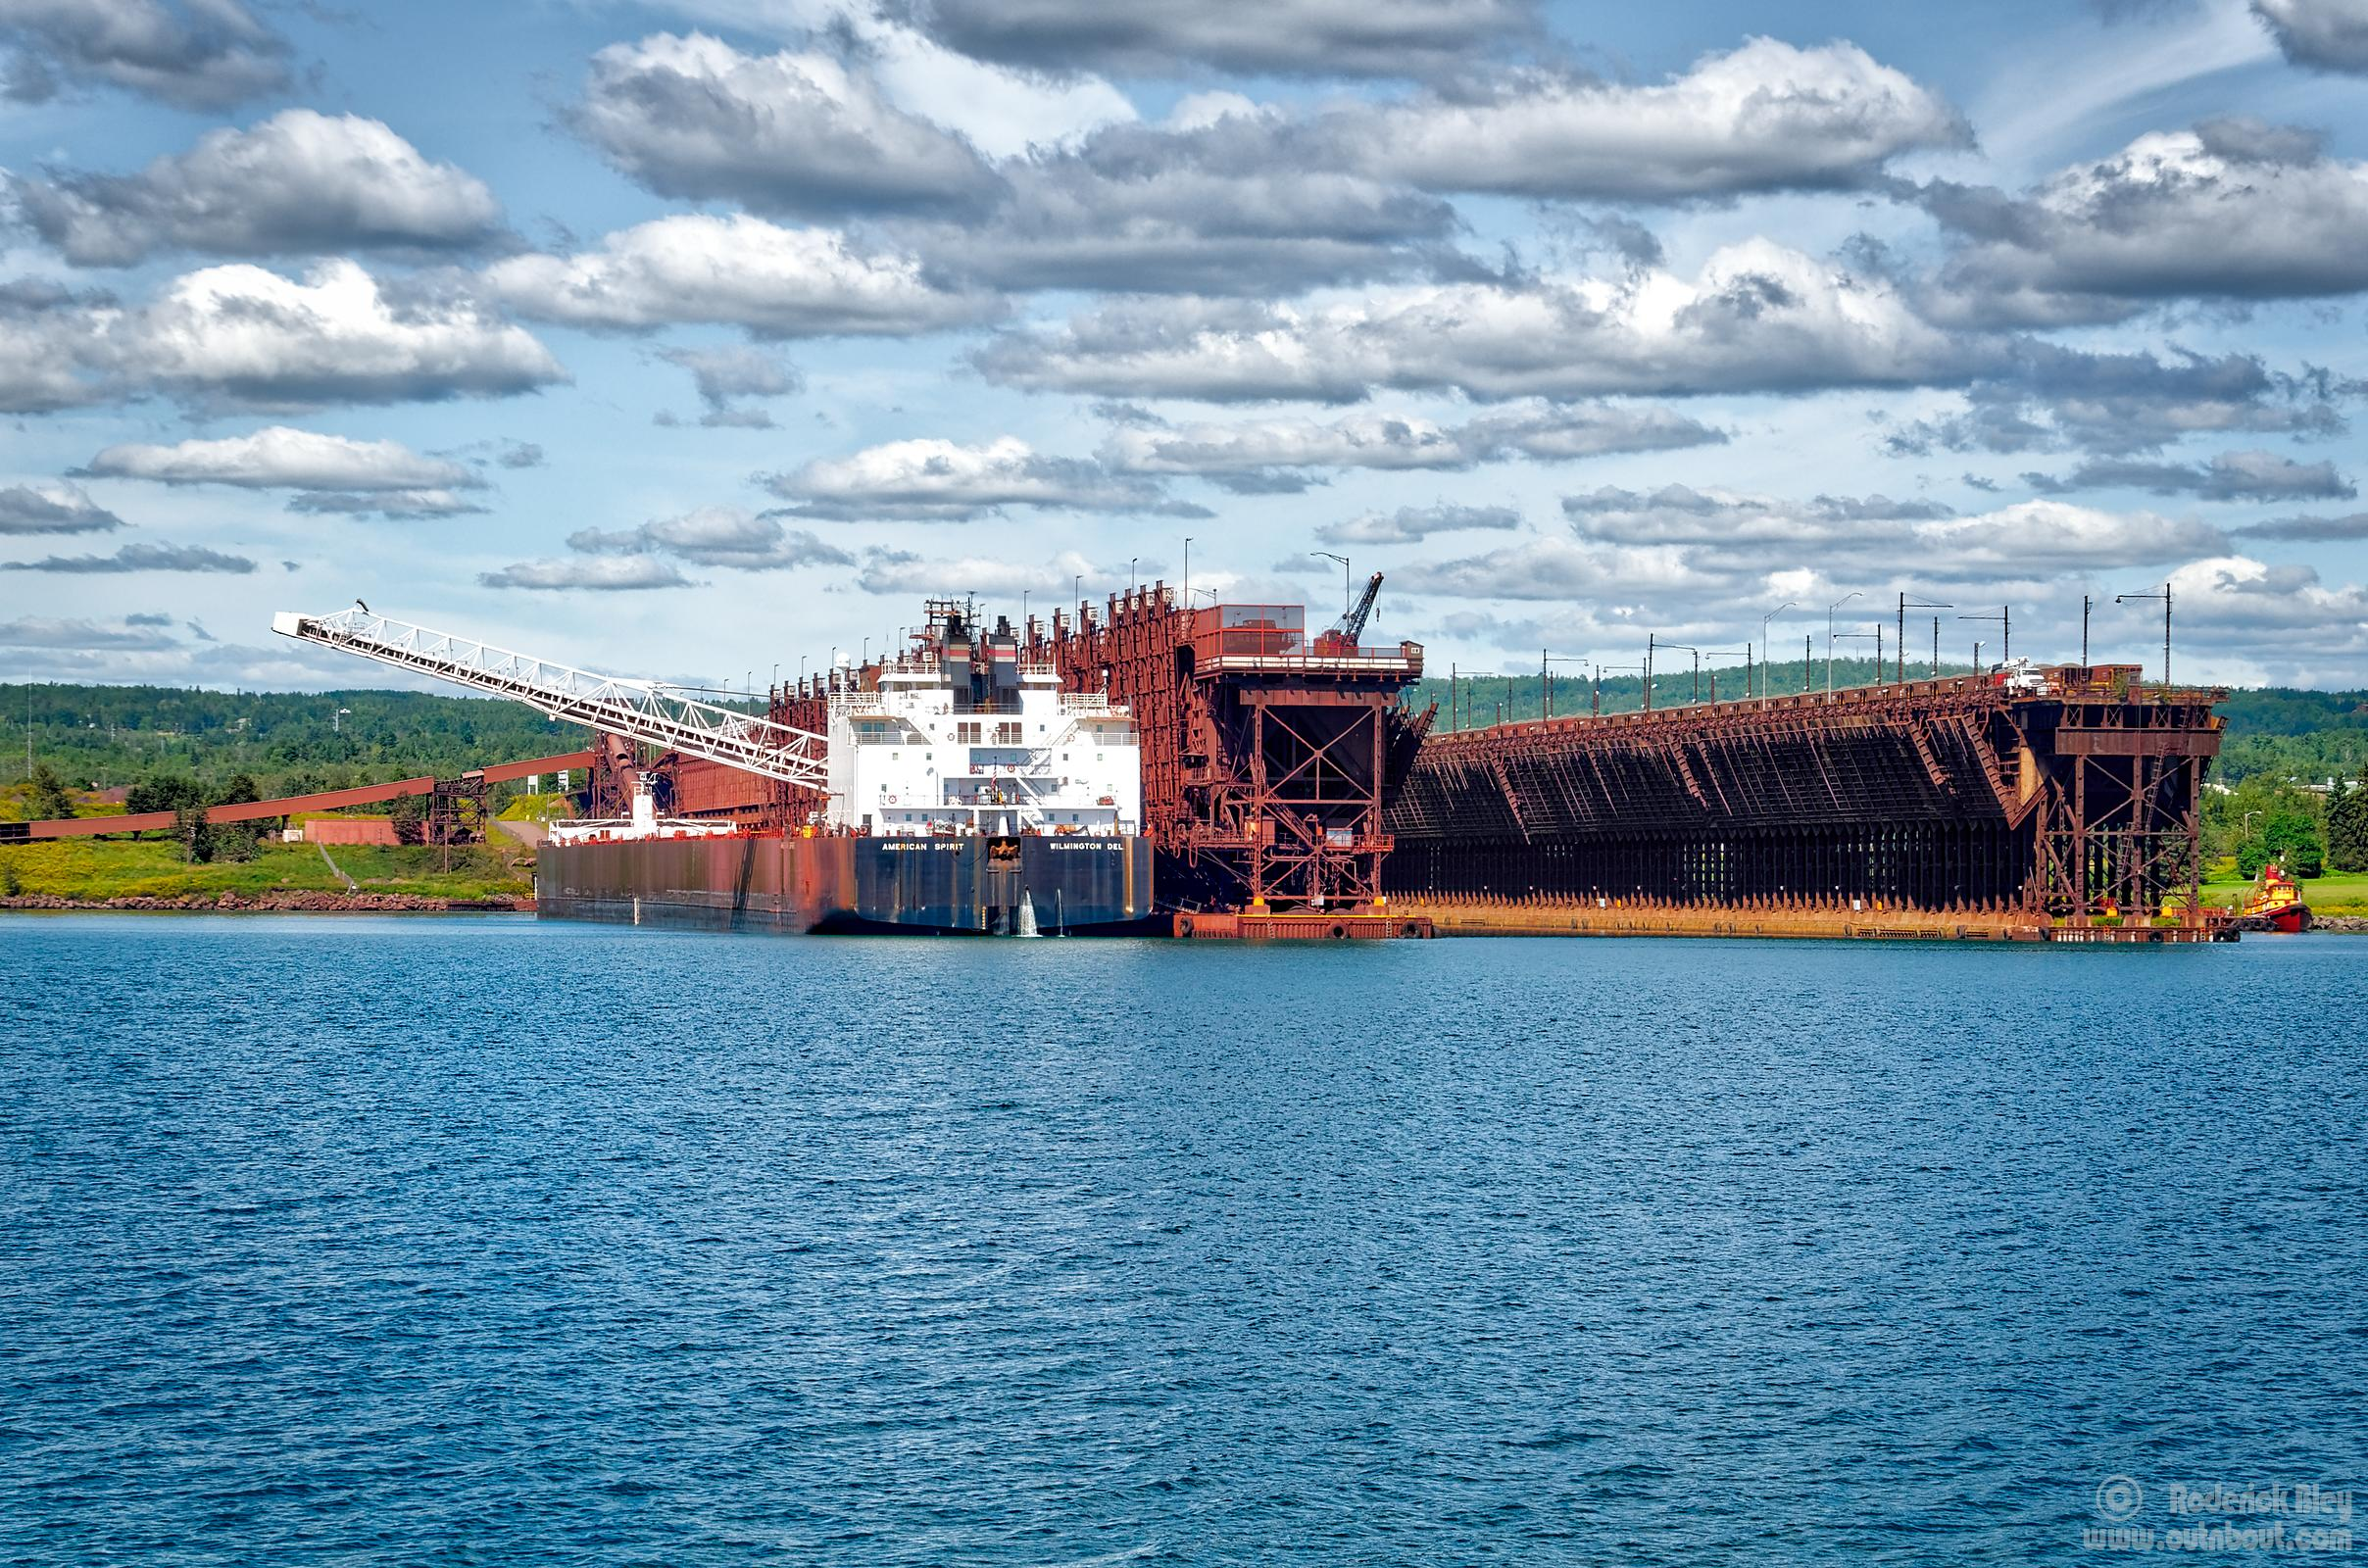 Iron ore loading onto Laker